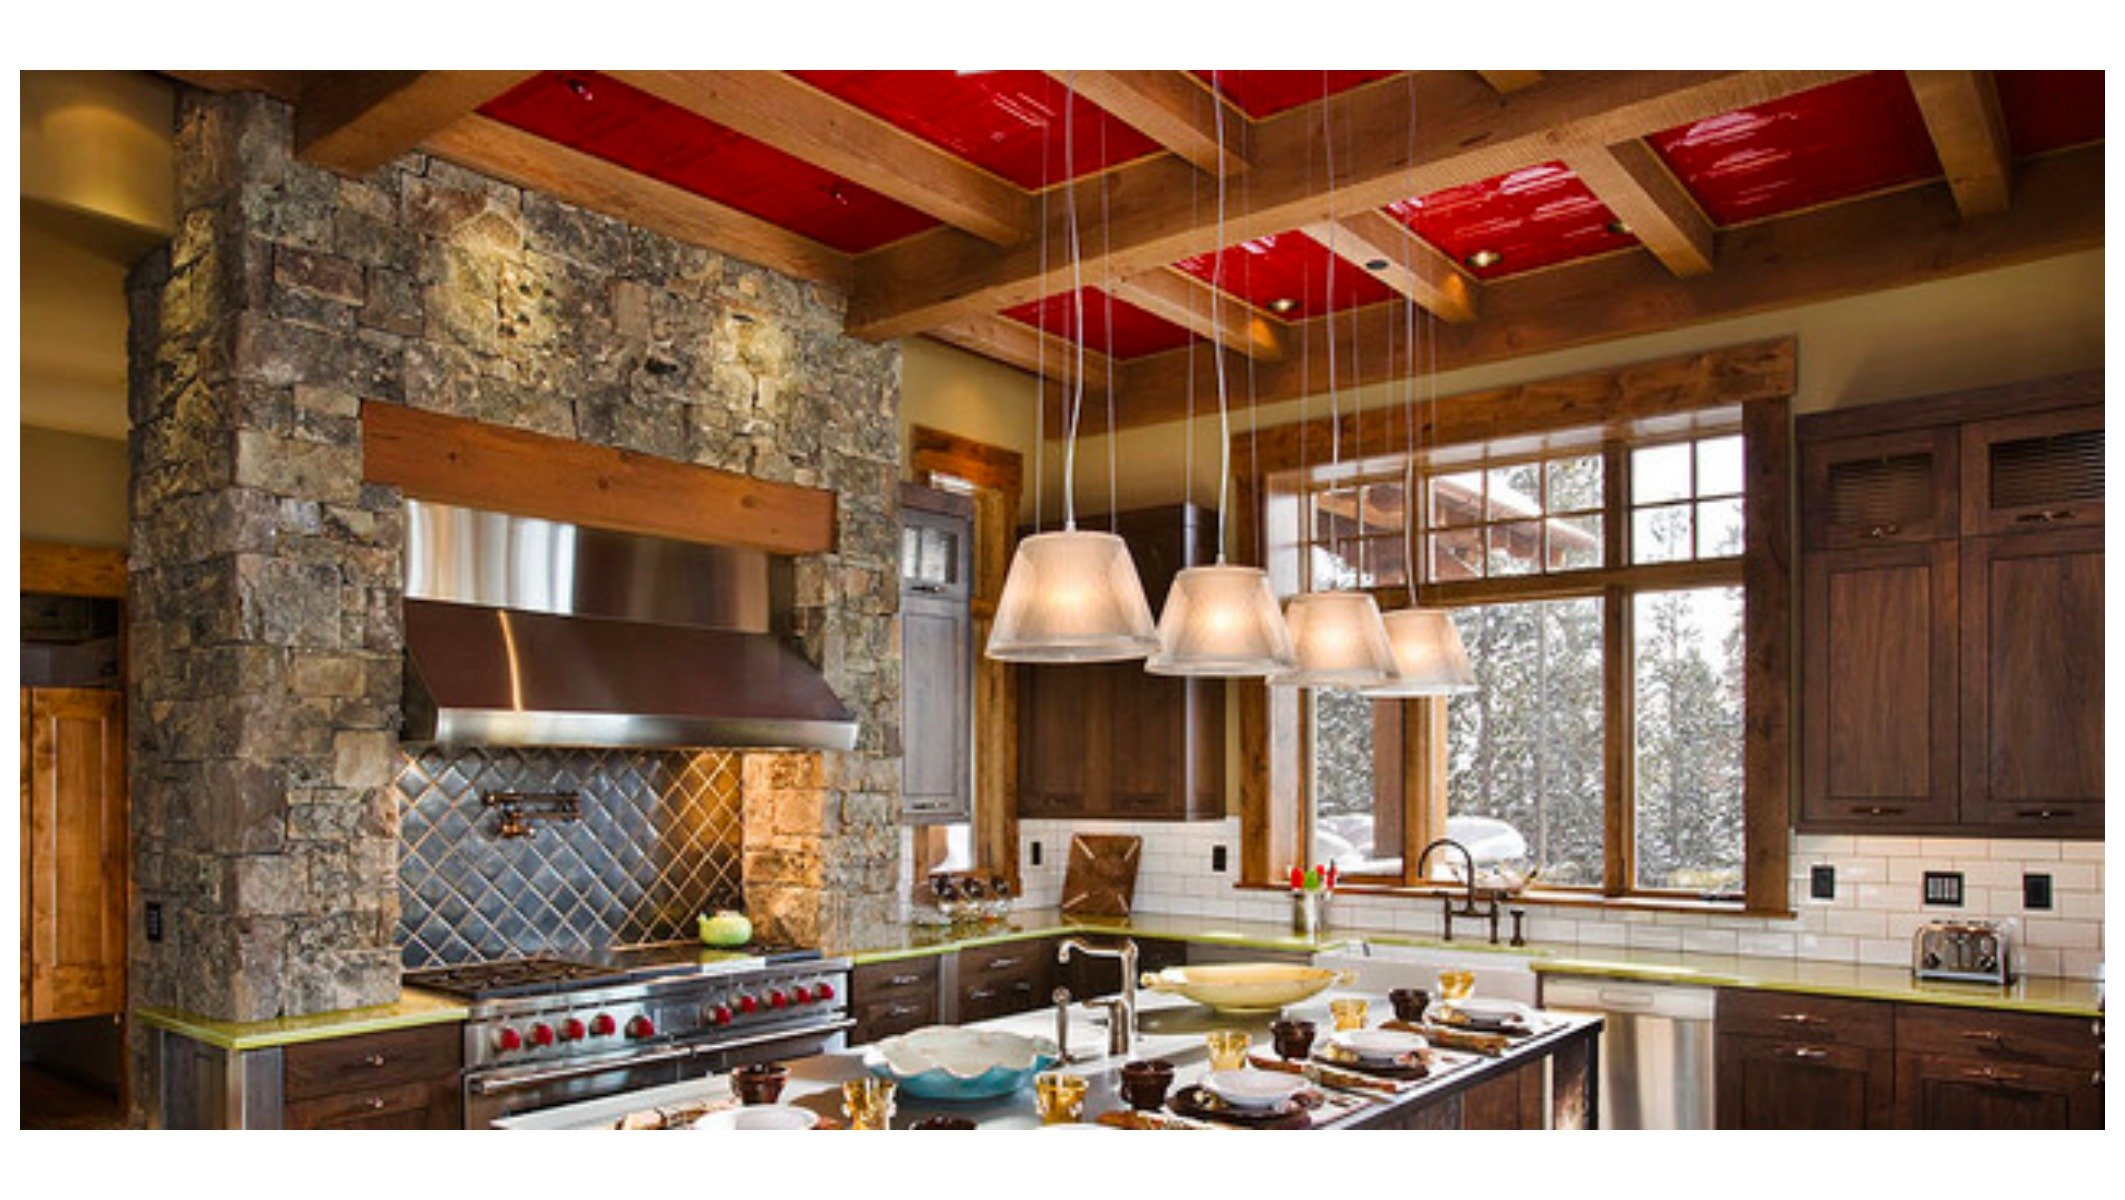 Red Tin Ceiling Tiles Add A Punch Of Color To A Neutral